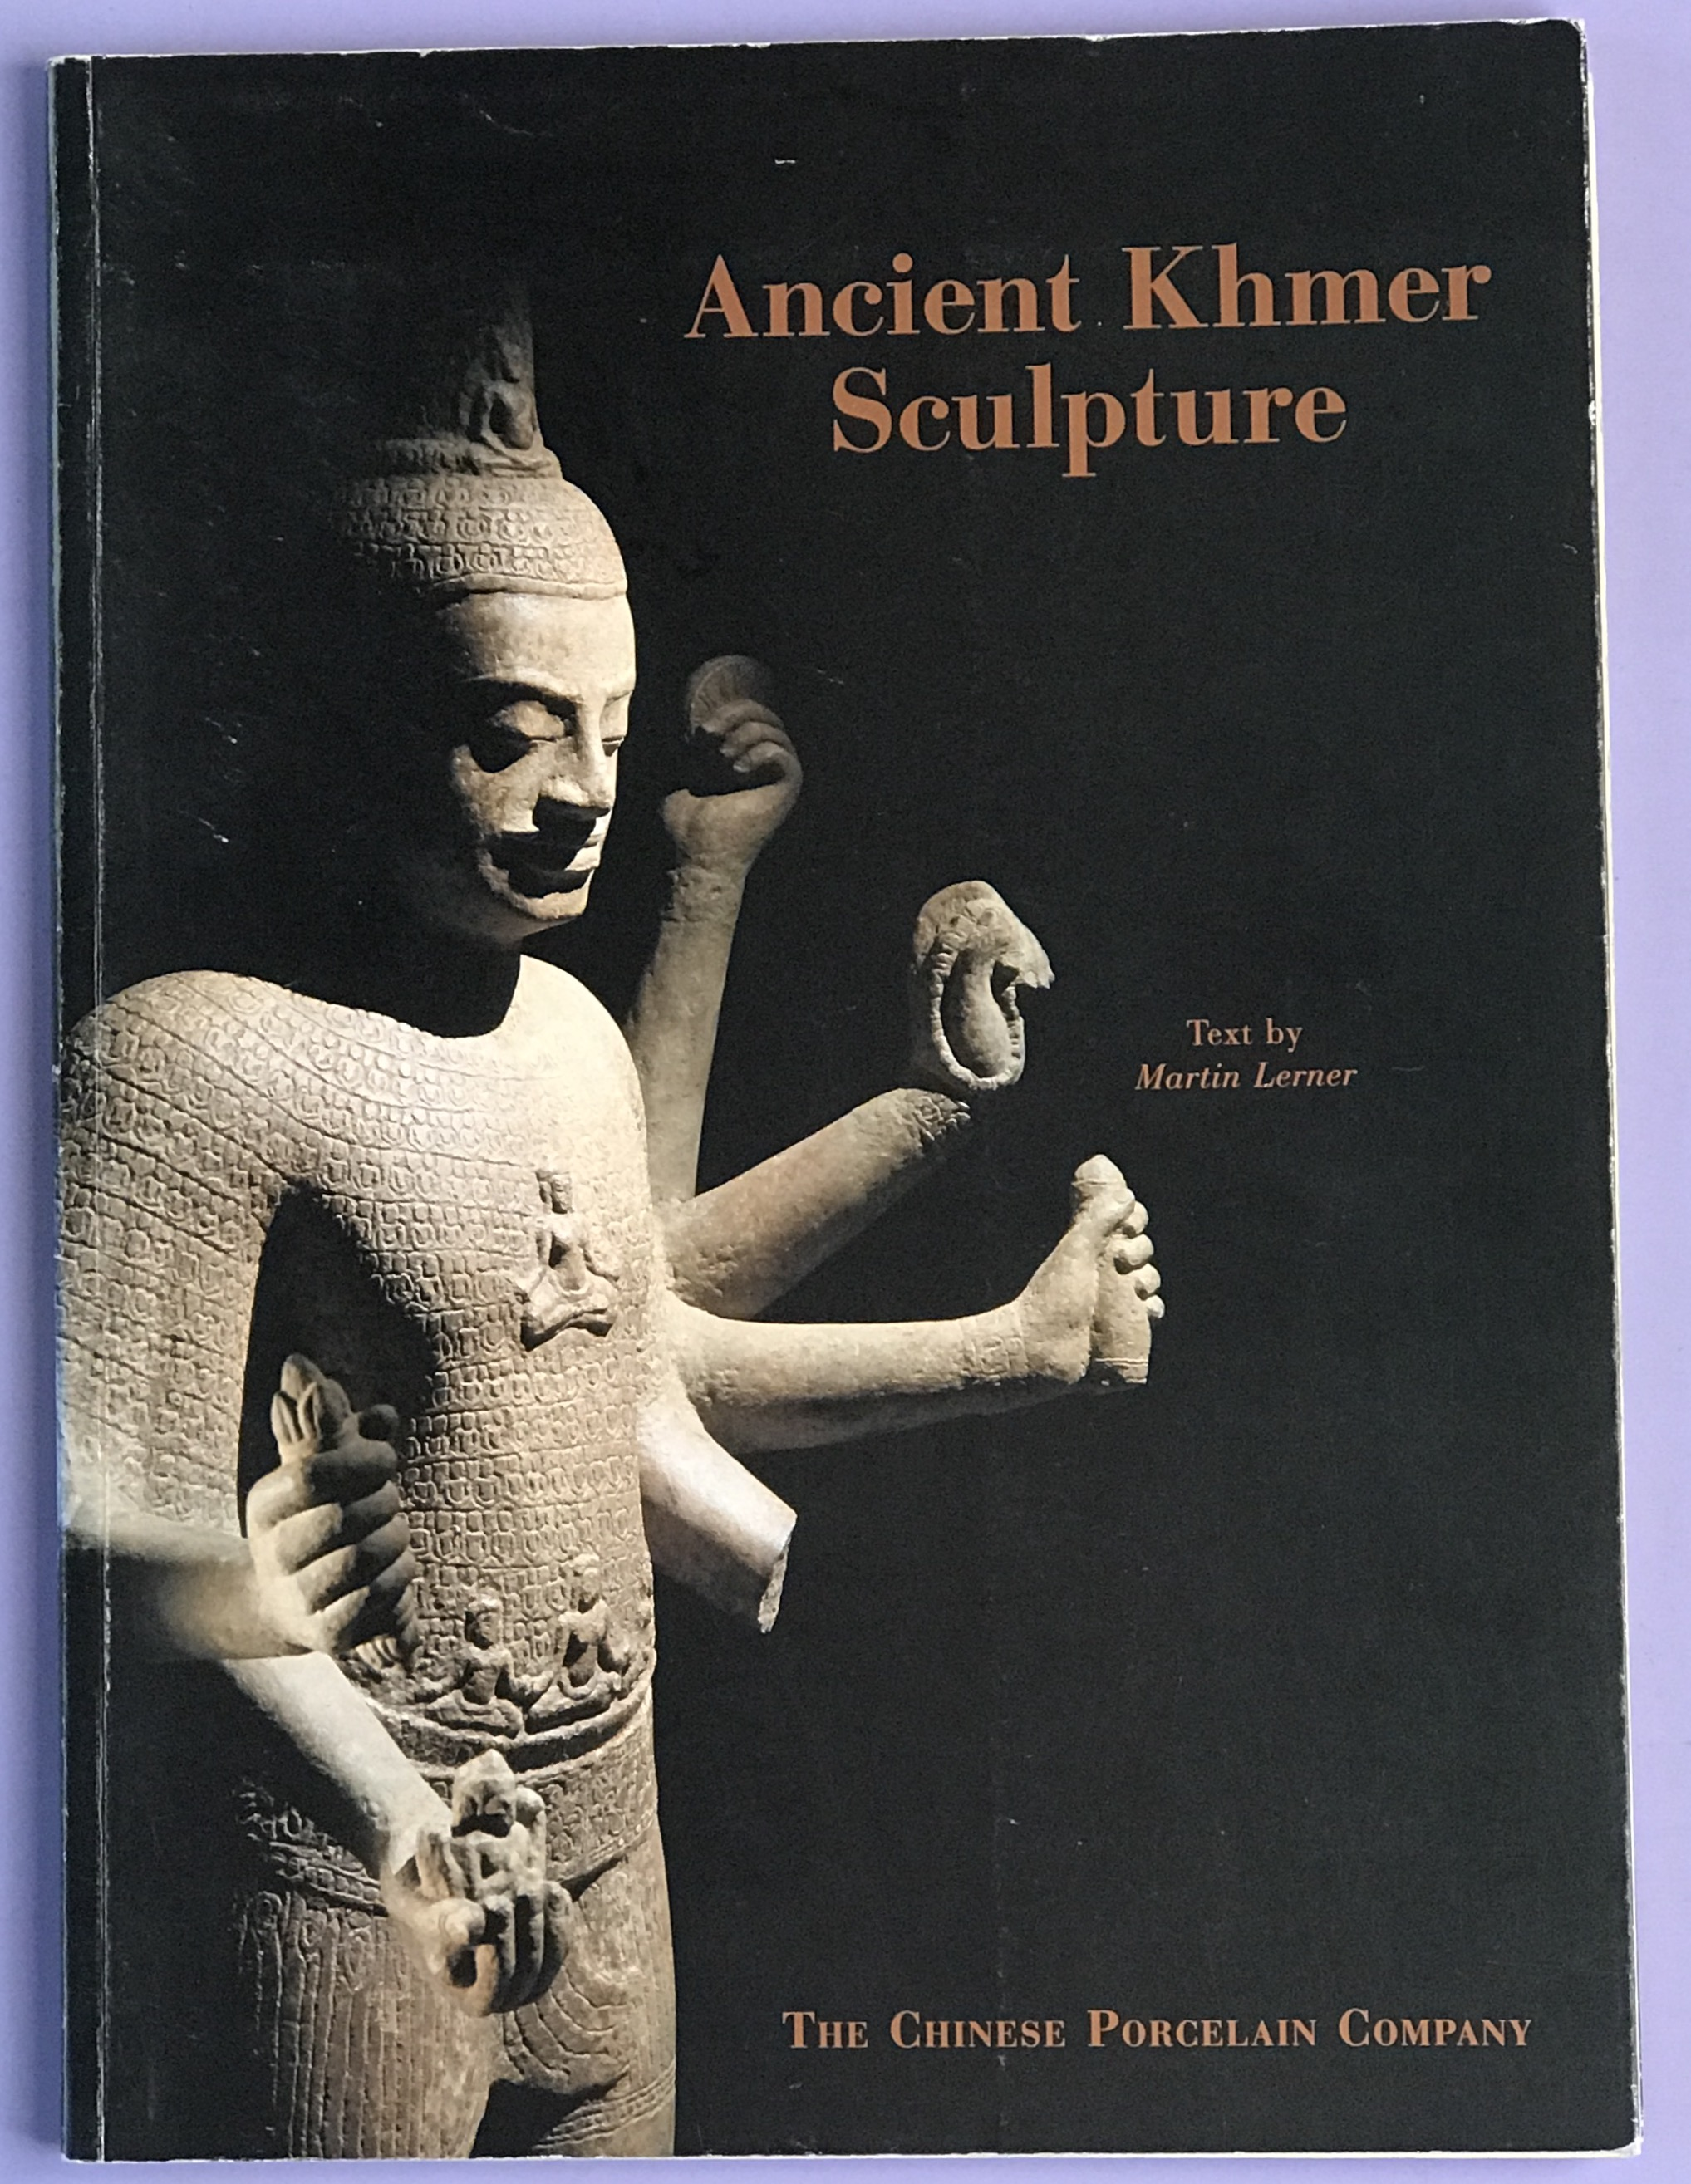 B001X6DBJWRD: Bookshop: Ancient Khmer Sculpture